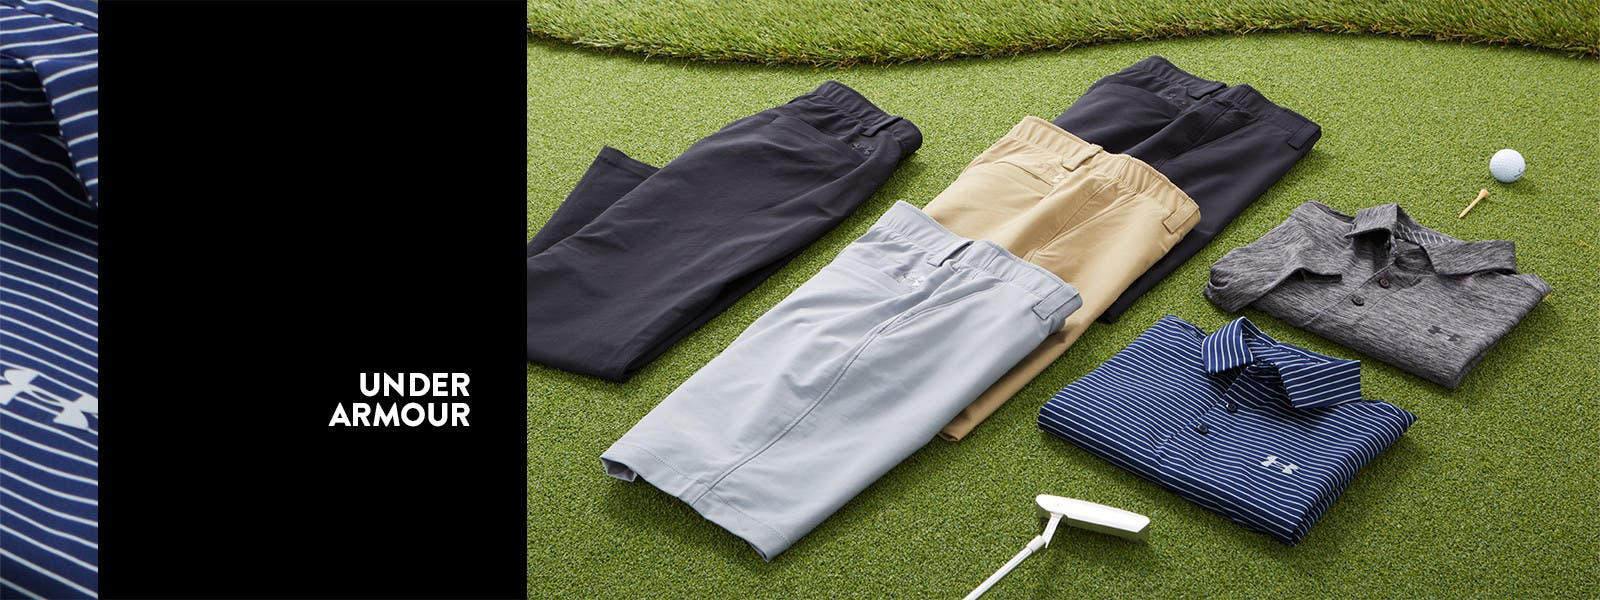 Under Armour golf apparel.